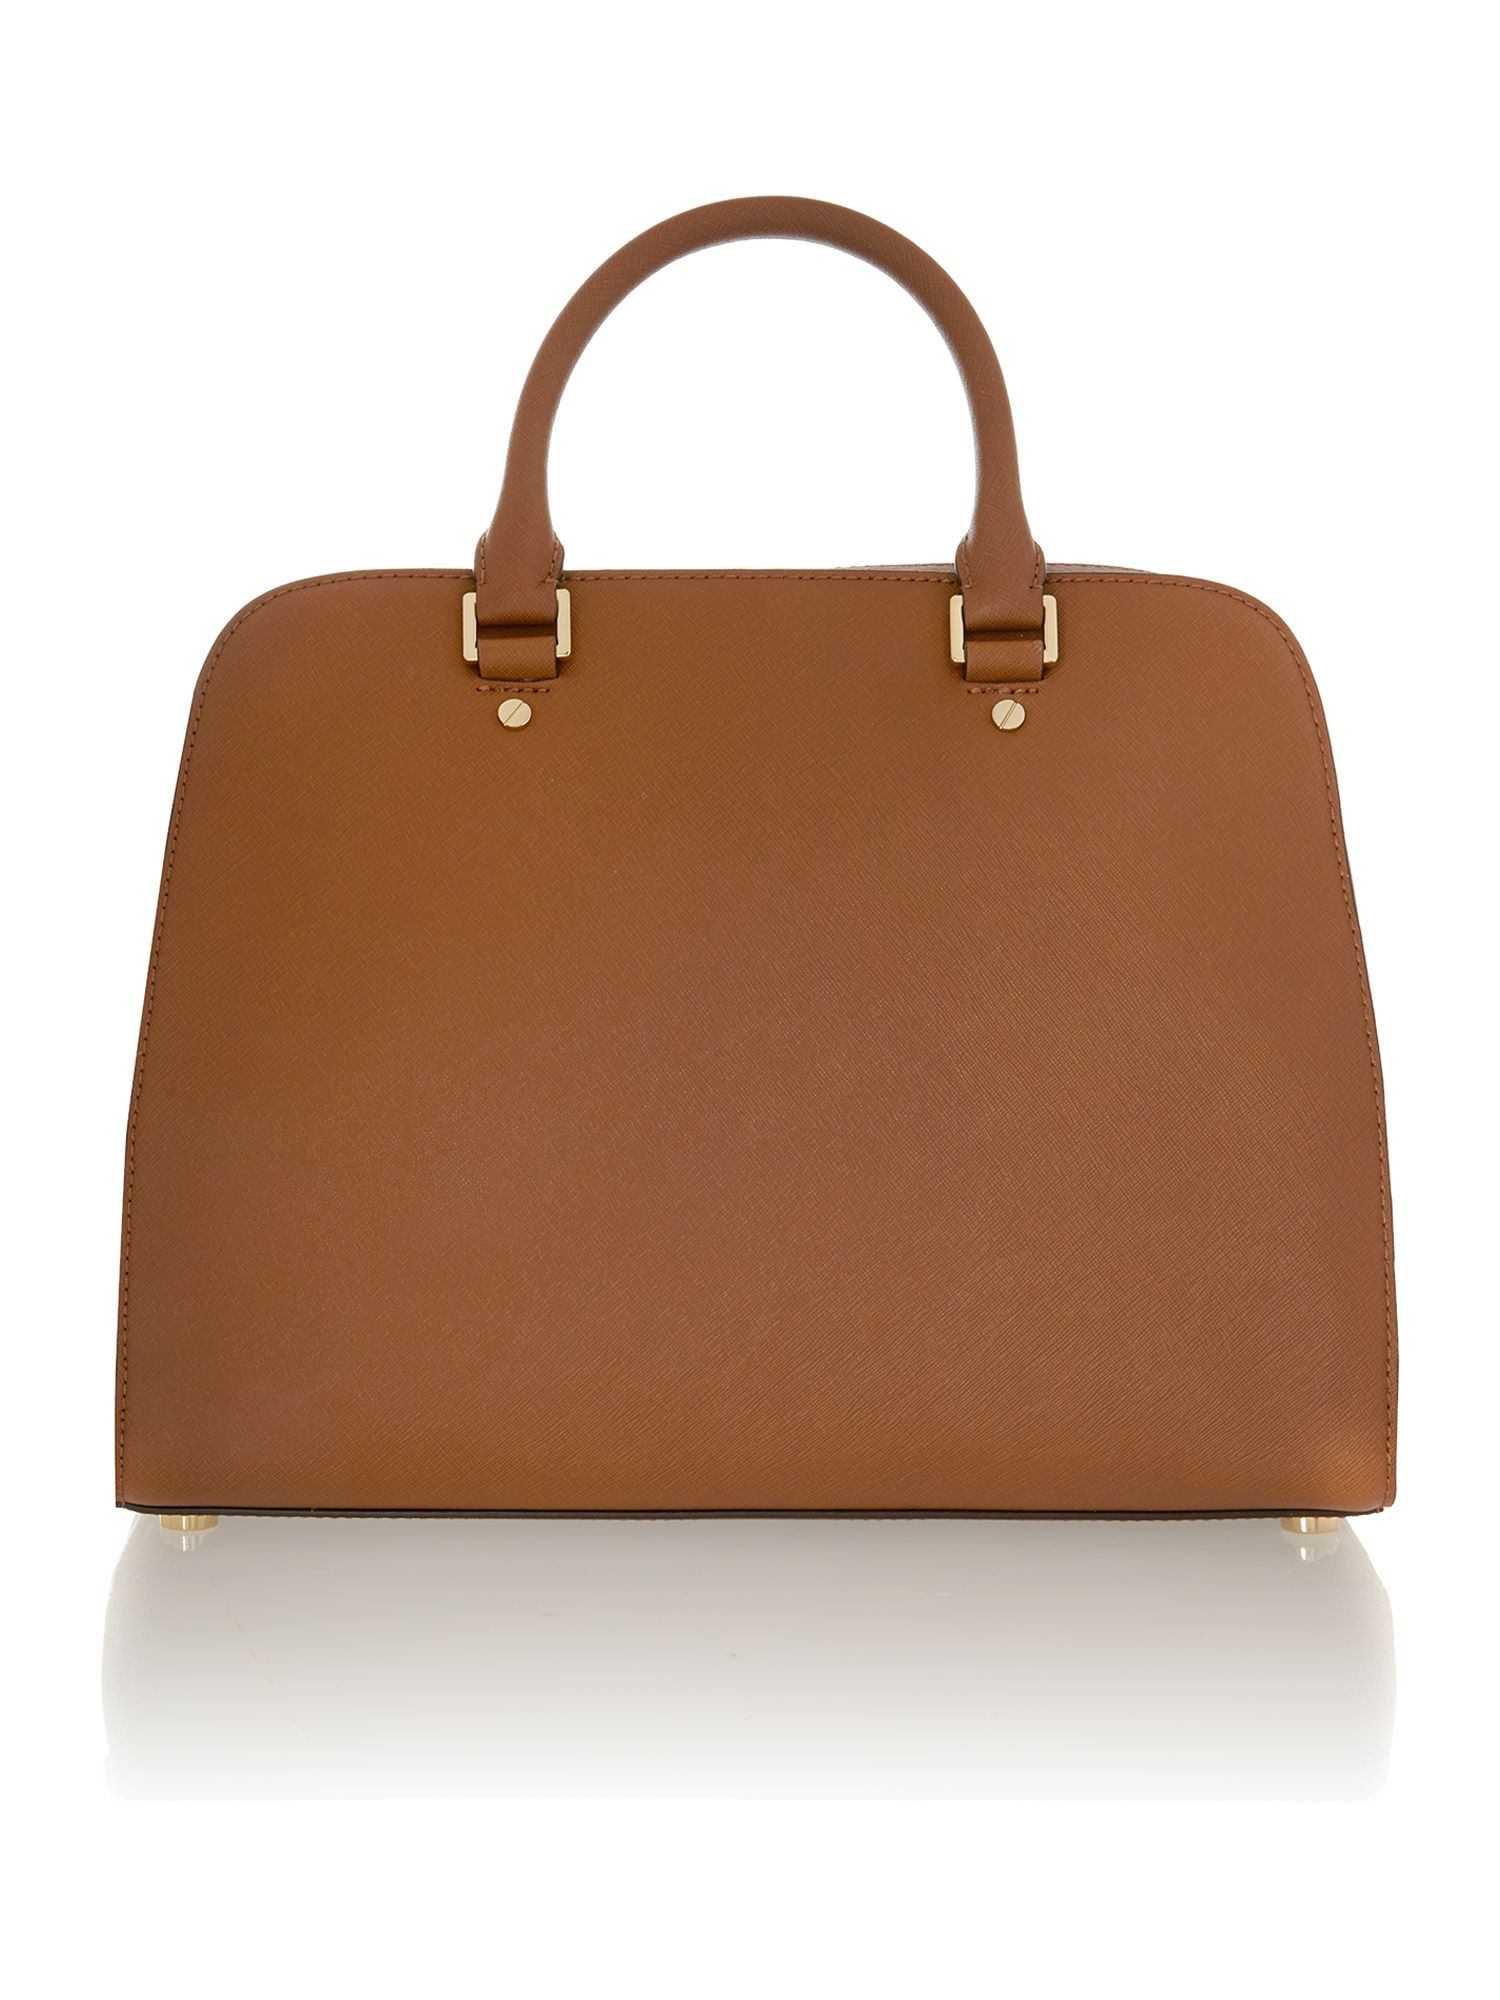 Jet Set Travel tan tote bag